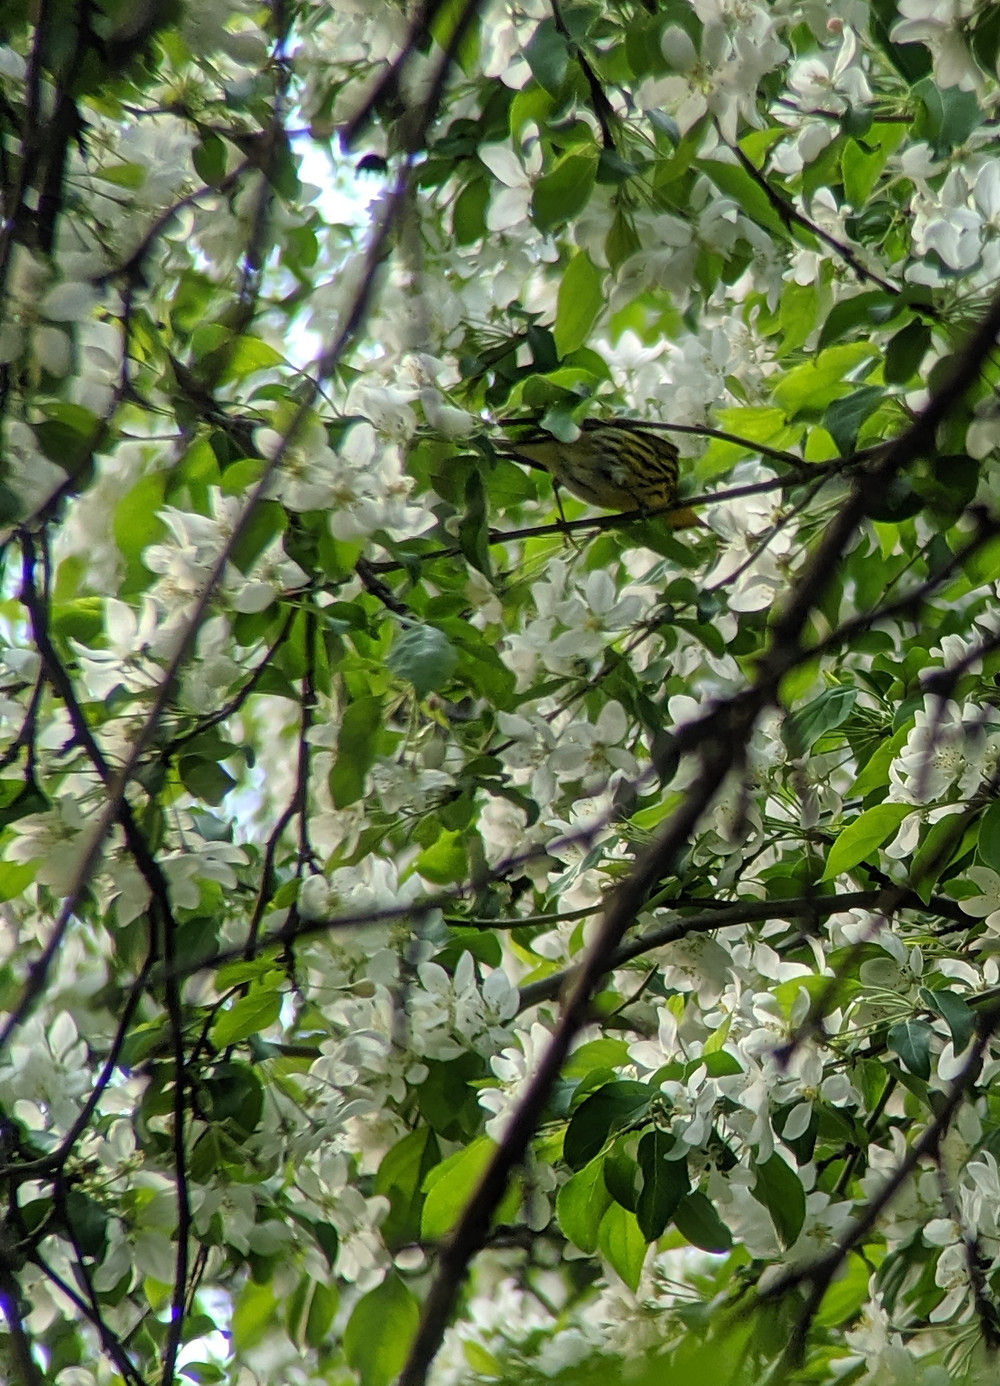 Cape May Warbler from below in a tree with many flowers